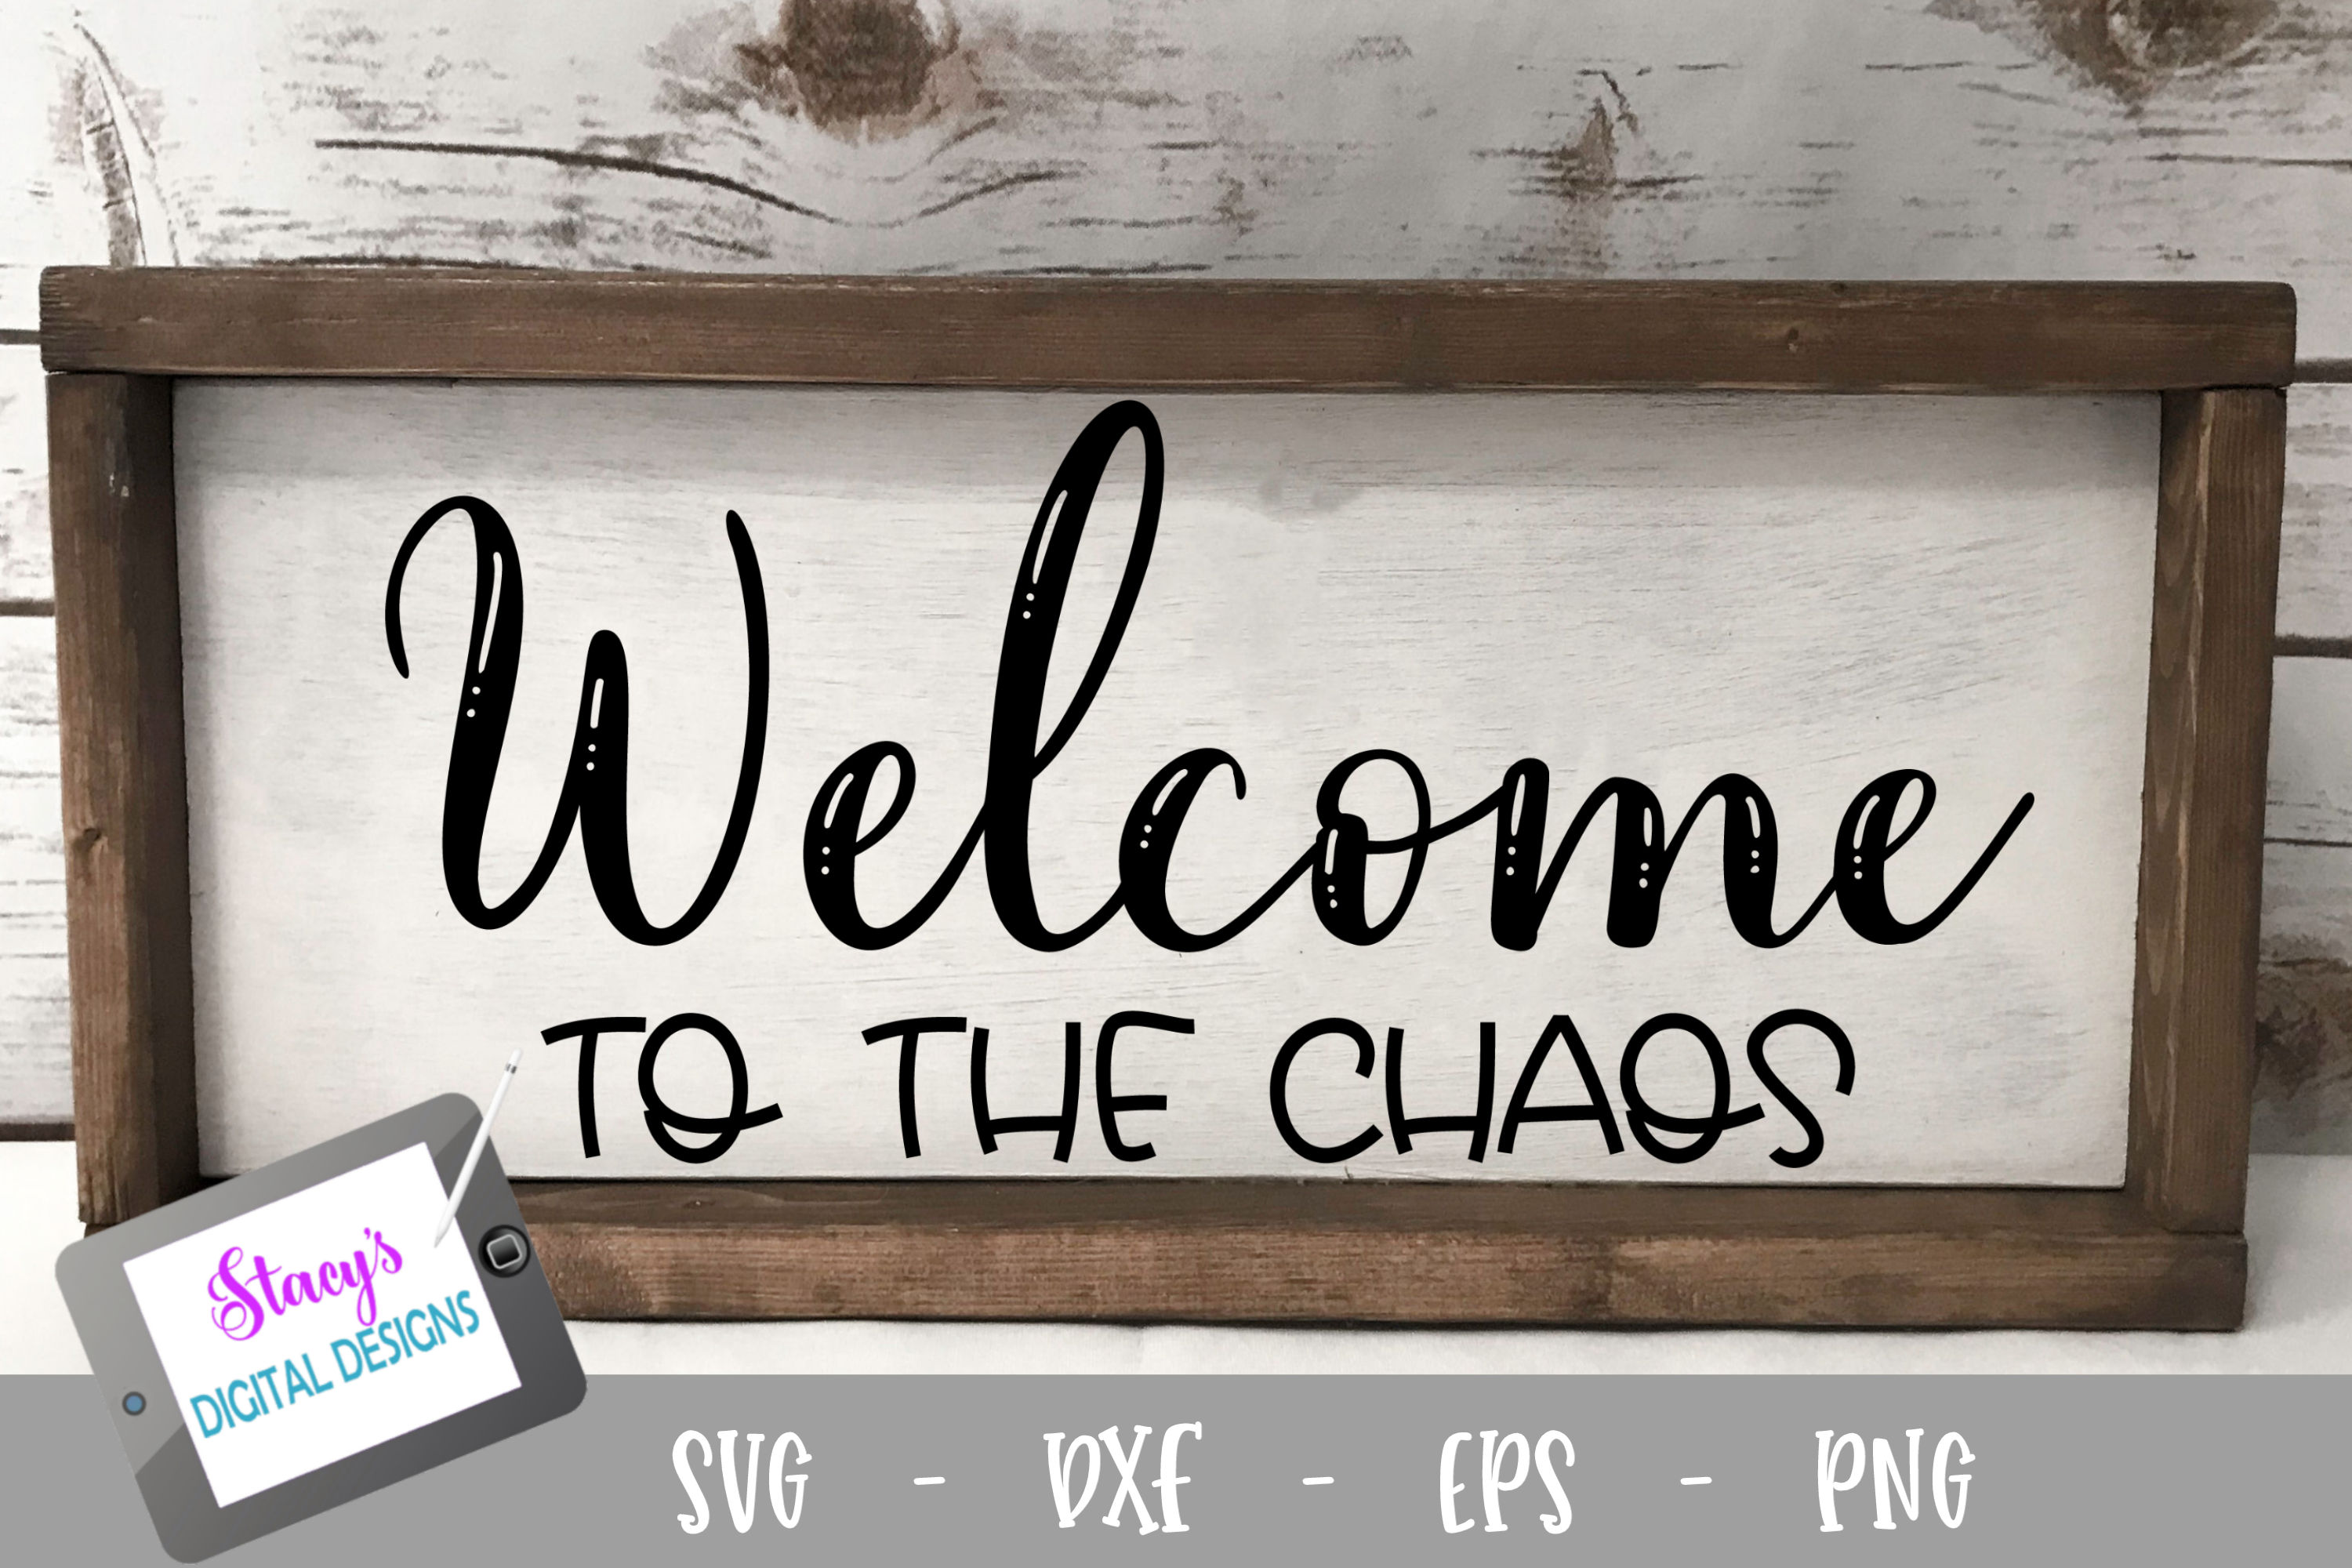 Welcome to the chaos SVG - Welcome sign SVG example image 1